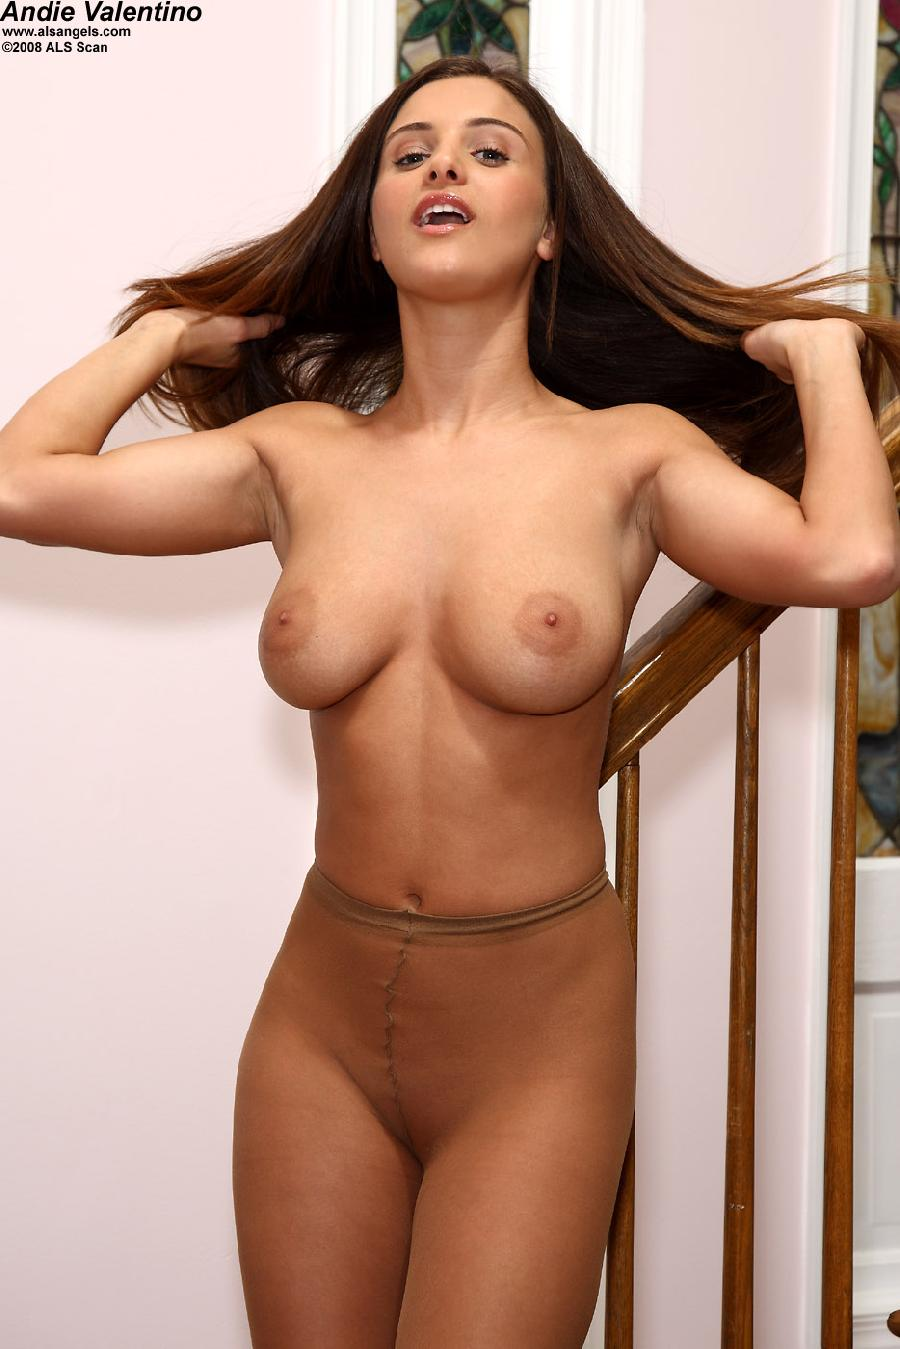 Andie valentino in sheer pantyhose showing her meaty pussy 6